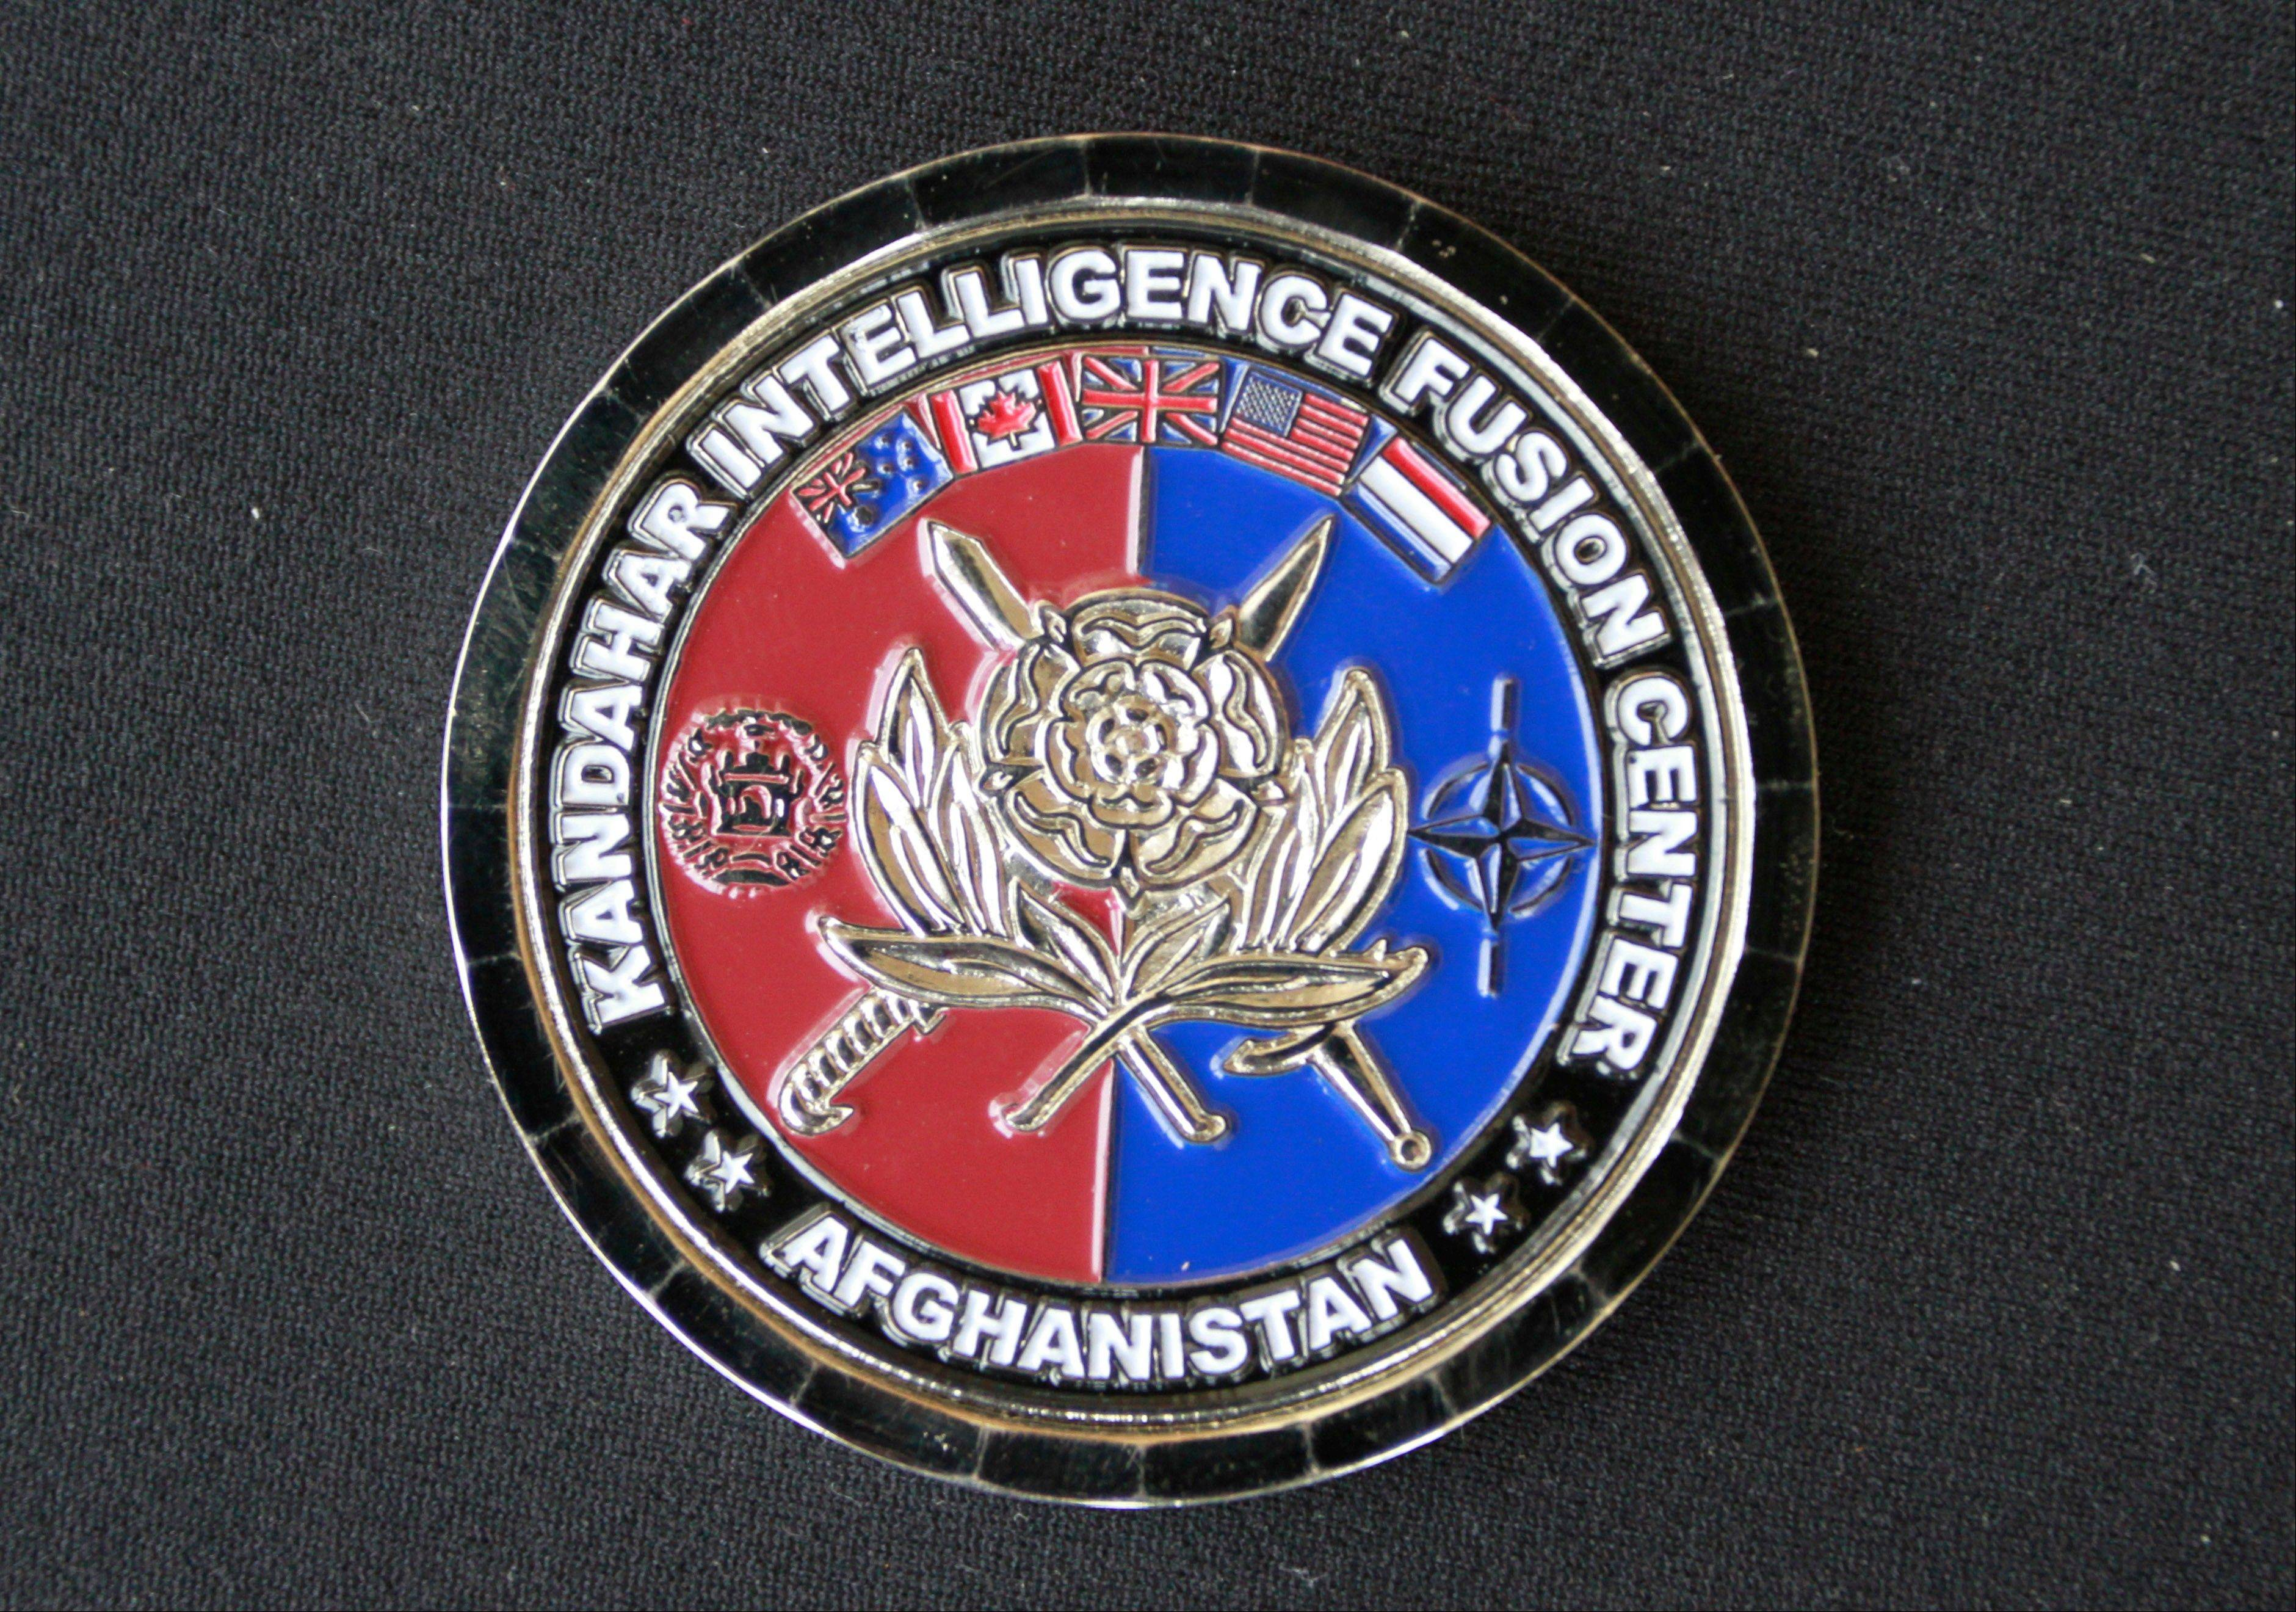 In this March 2011 photo, the front side of a souvenir coin from the U.S. militaryís intelligence center in Kandahar, Afghanistan, is shown, illustrating the shift in focus from helping the population to targeting the enemy. A year ago at this time, military intelligence officers were scrambling to collect and analyze a new form of intelligence _ the social, economic and tribal ins and outs of each valley and hamlet seen as crucial to helping commanders tell the good guys from the bad guys, learn what local Afghans really needed from their government and undermine the Taliban-led insurgency by gradually winning hearts and minds.